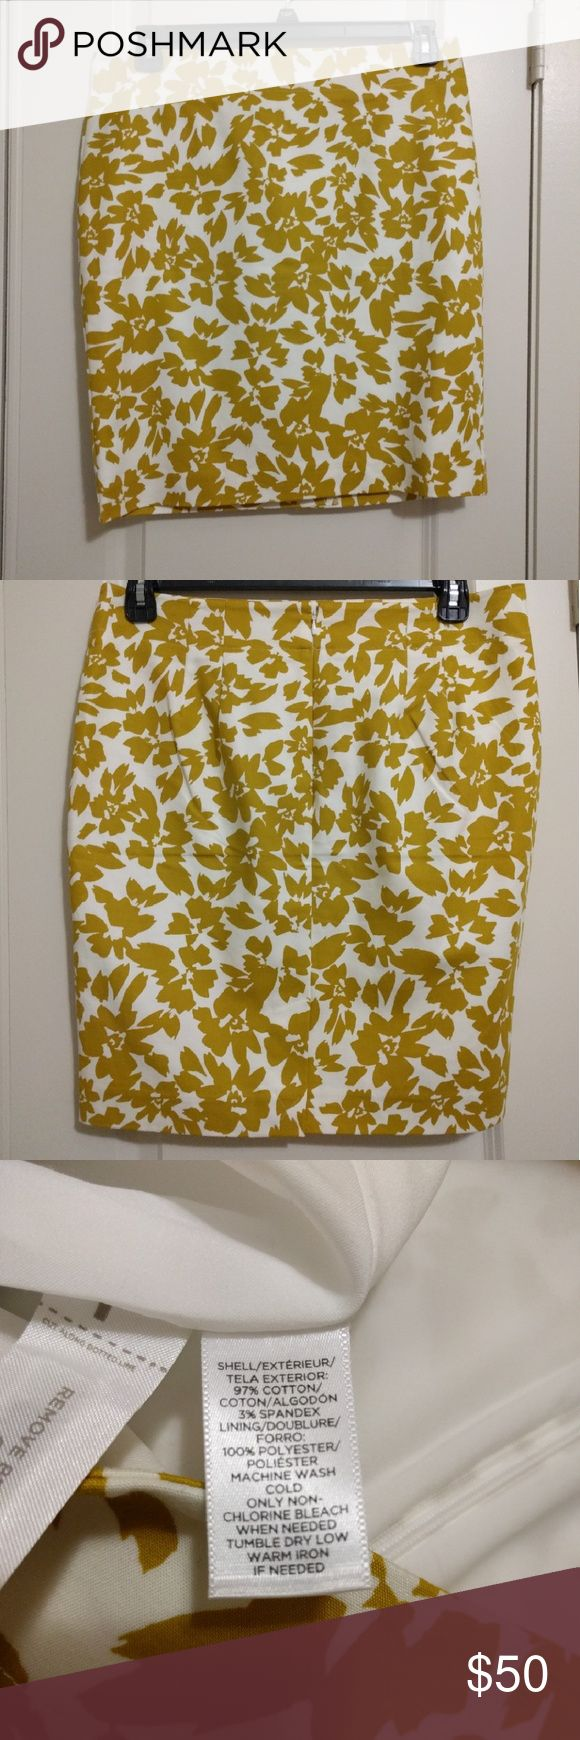 Ann Taylor Mustard & White Floral skirt Knee-length petite skirt in mustard and white floral pattern. Zips in the back. New with tags. LOFT Skirts Pencil